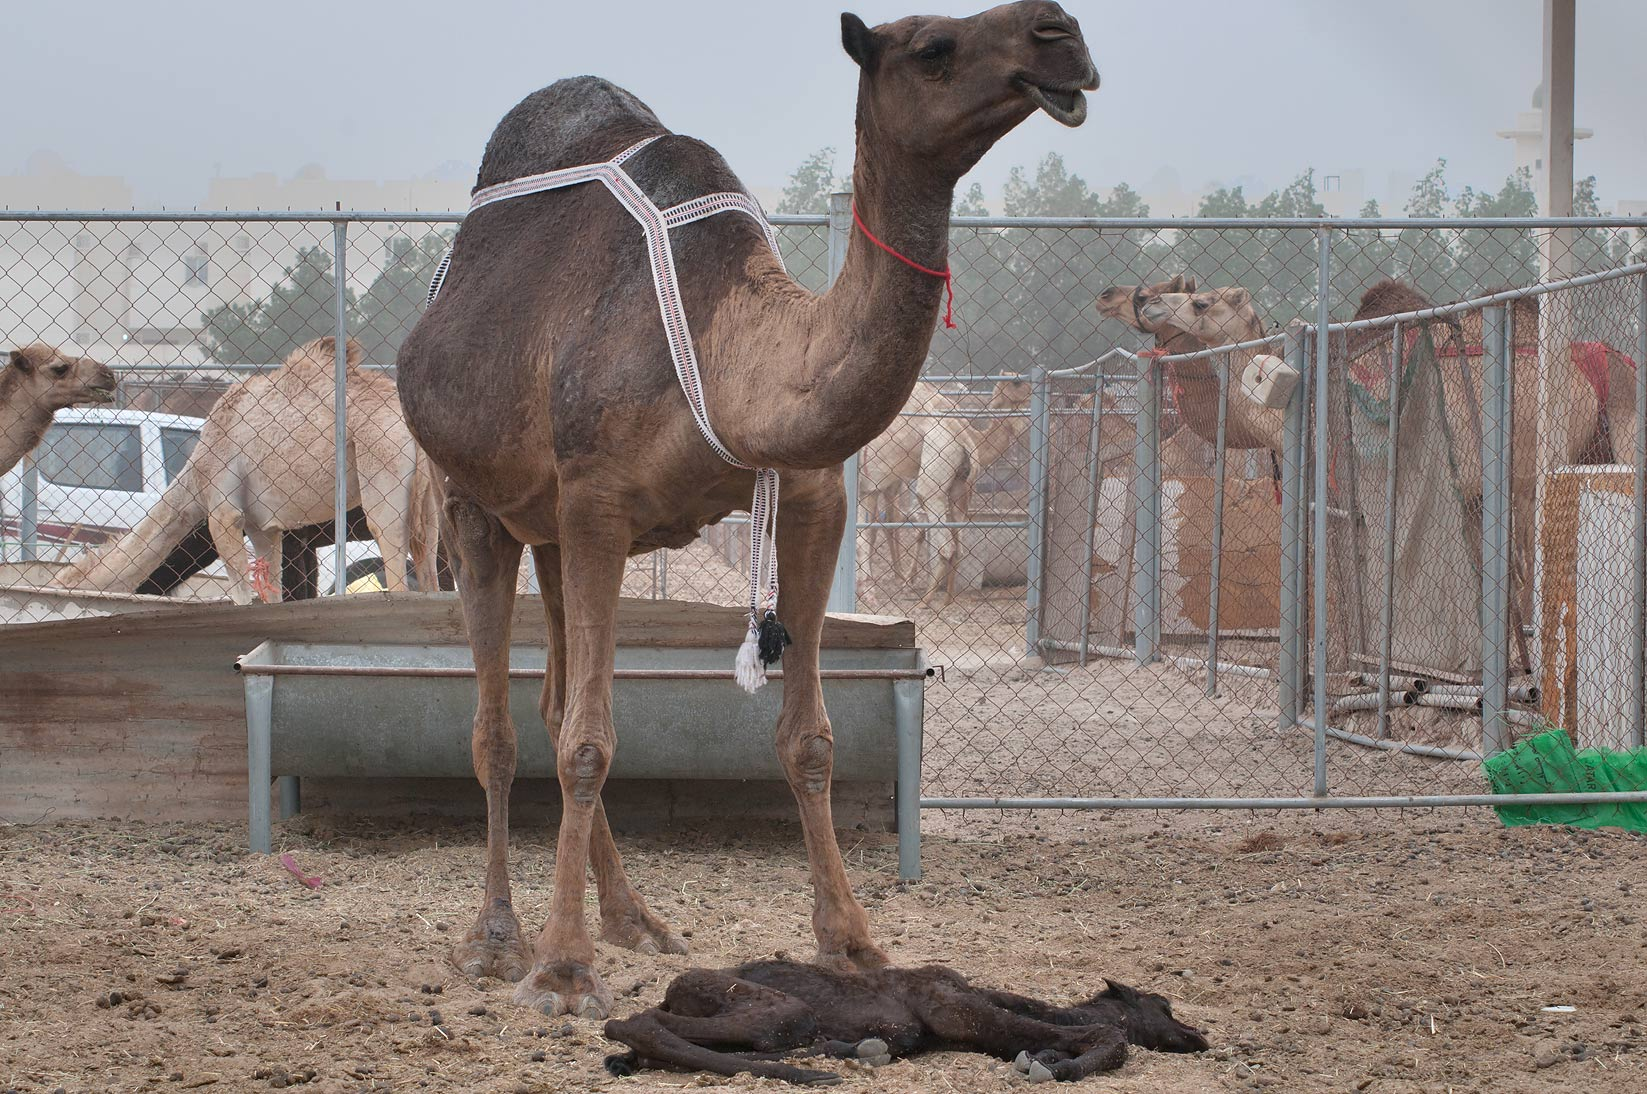 Camel with a sleeping calf in Camel Market, Wholesale Markets area. Doha, Qatar